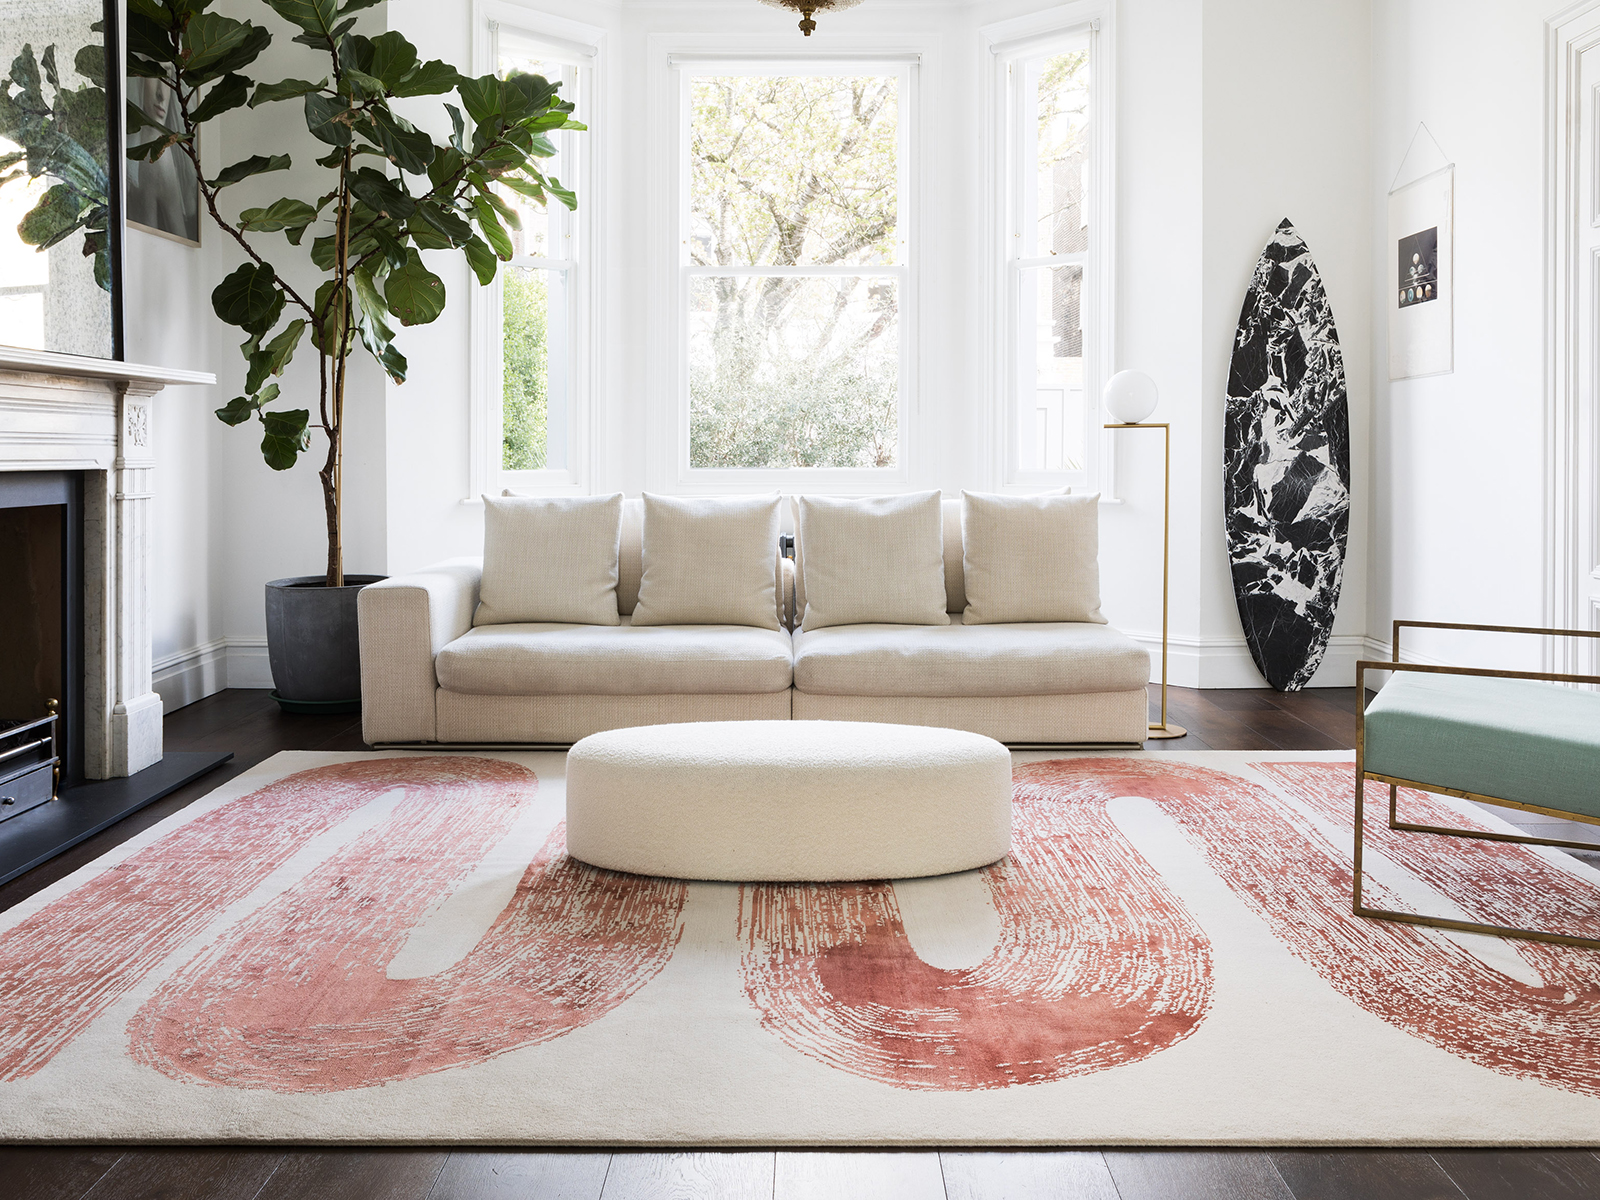 A white and terracotta rug in a living room